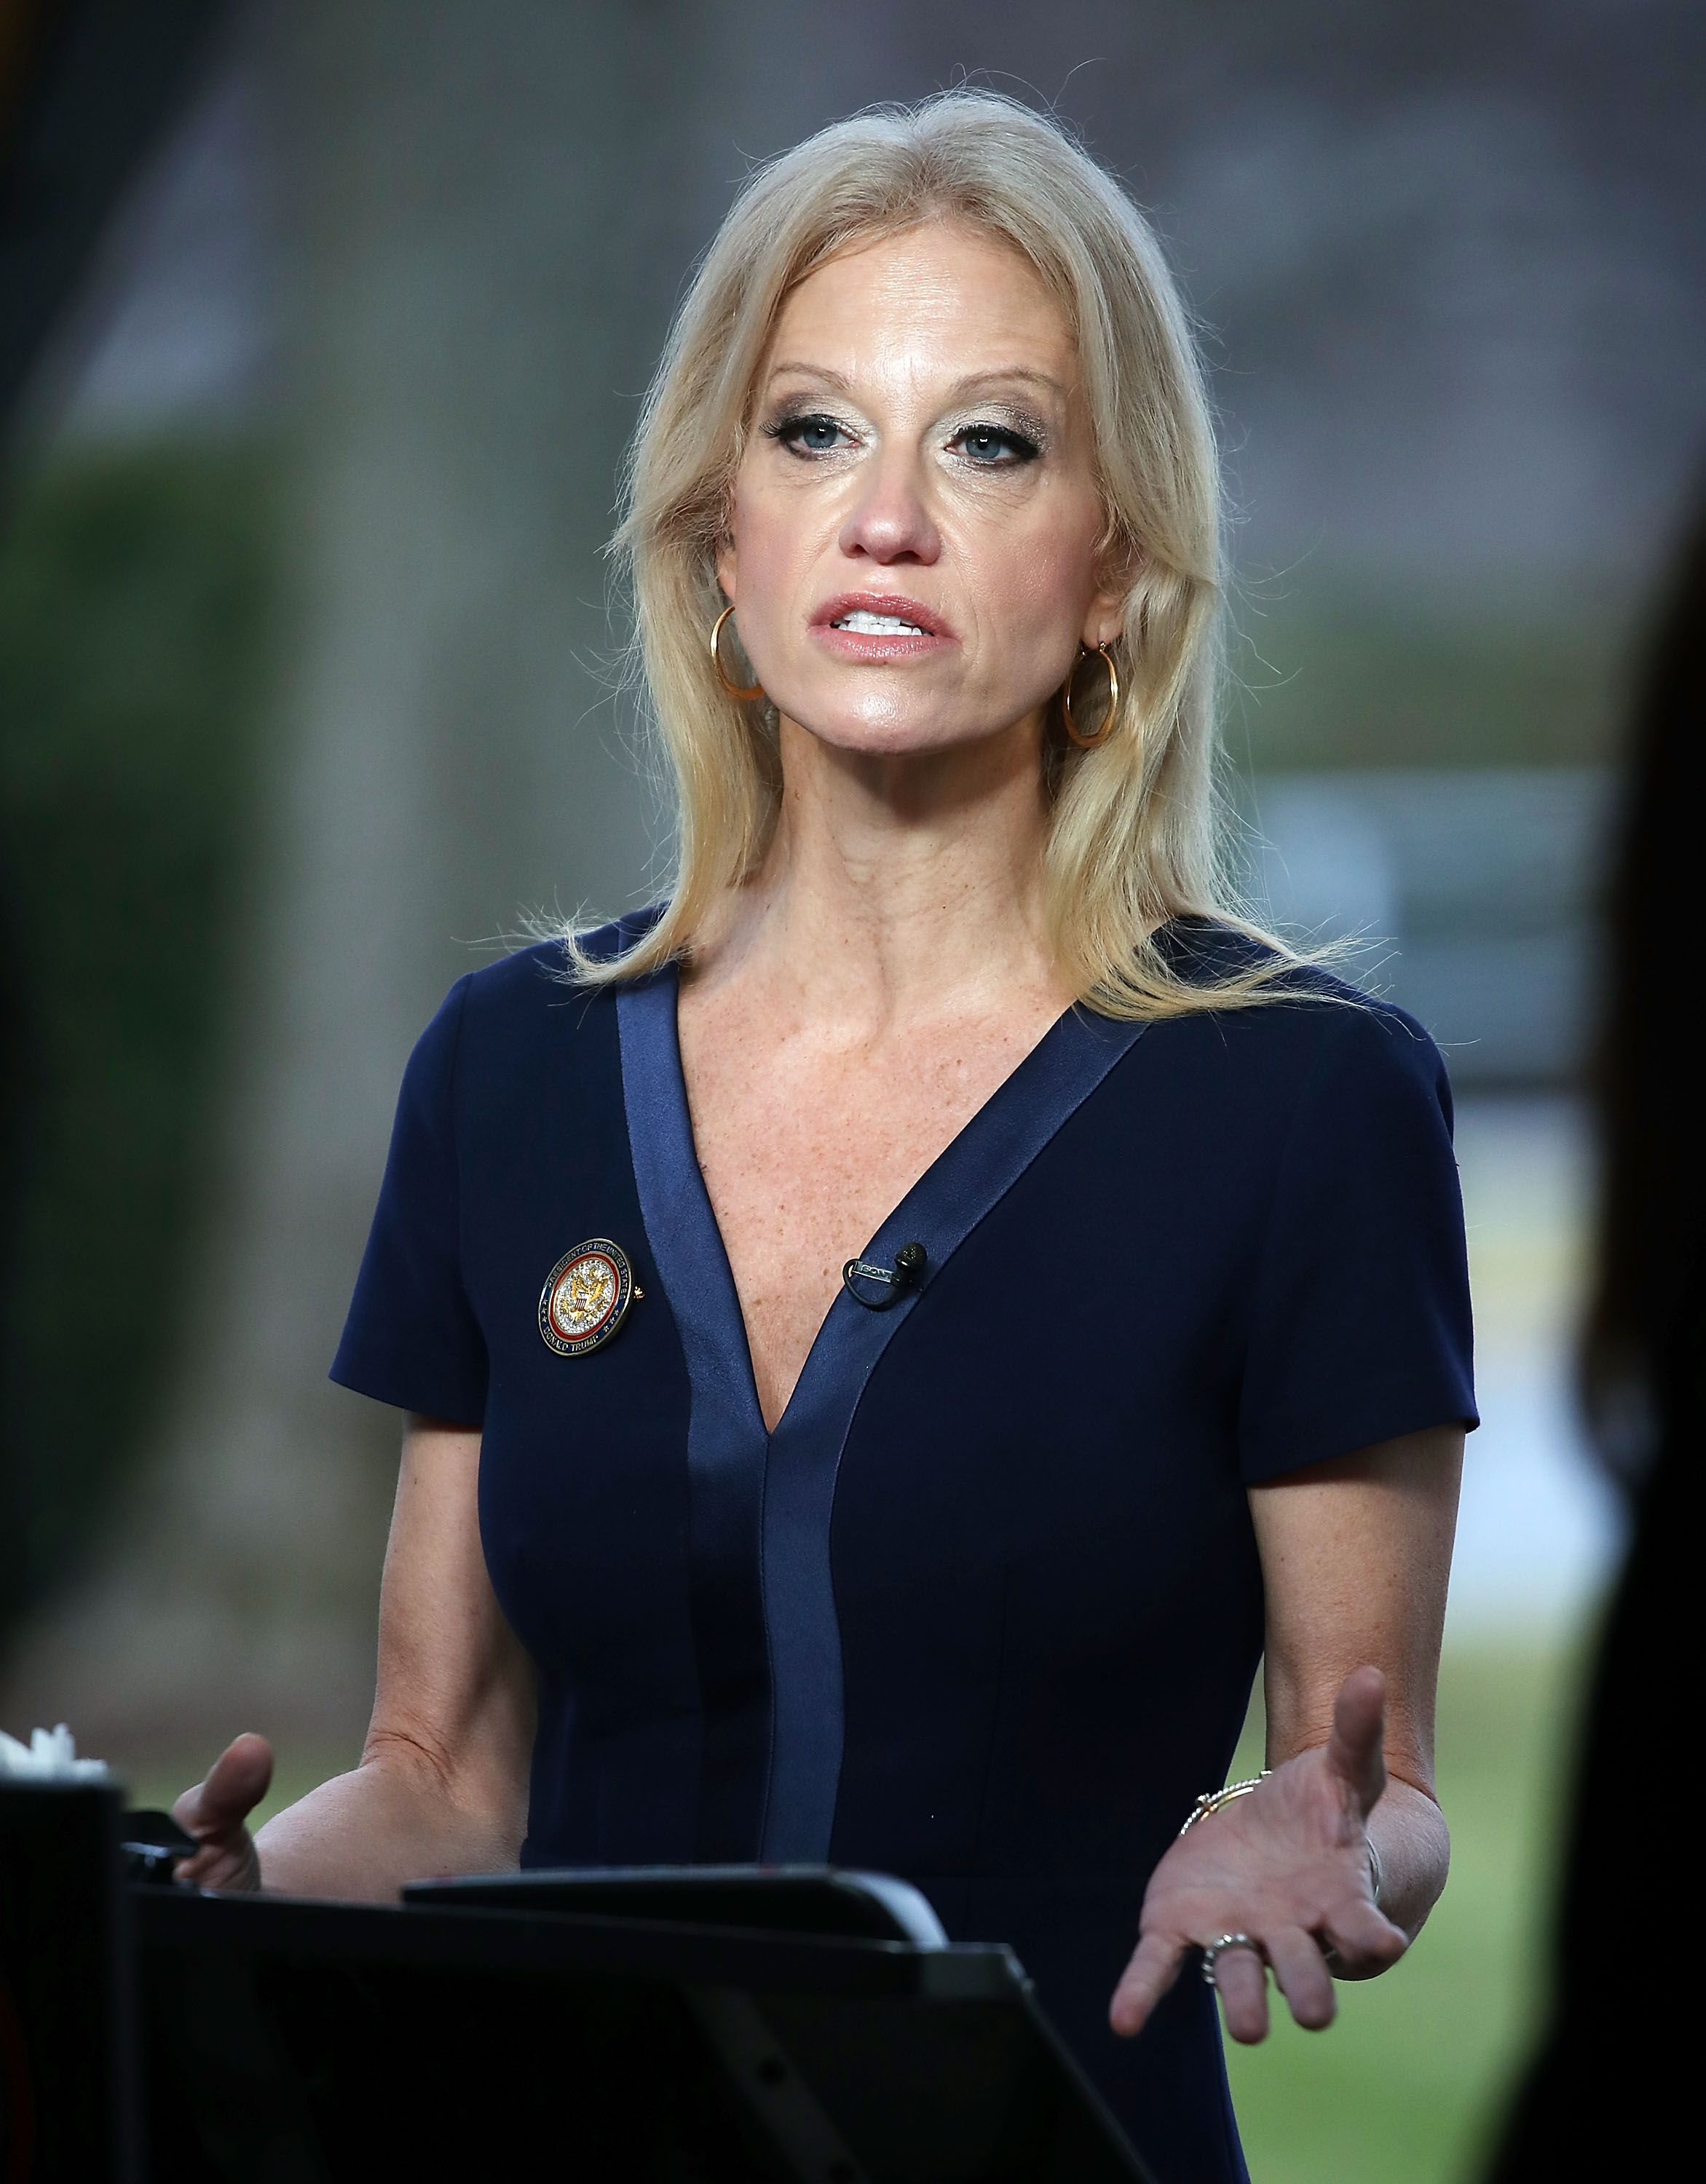 Kellyanne Conway, appears on the Sunday morning show This Week with George Stephanopoulos January 22, 2017 in Washington, DC | Photo: Getty Images